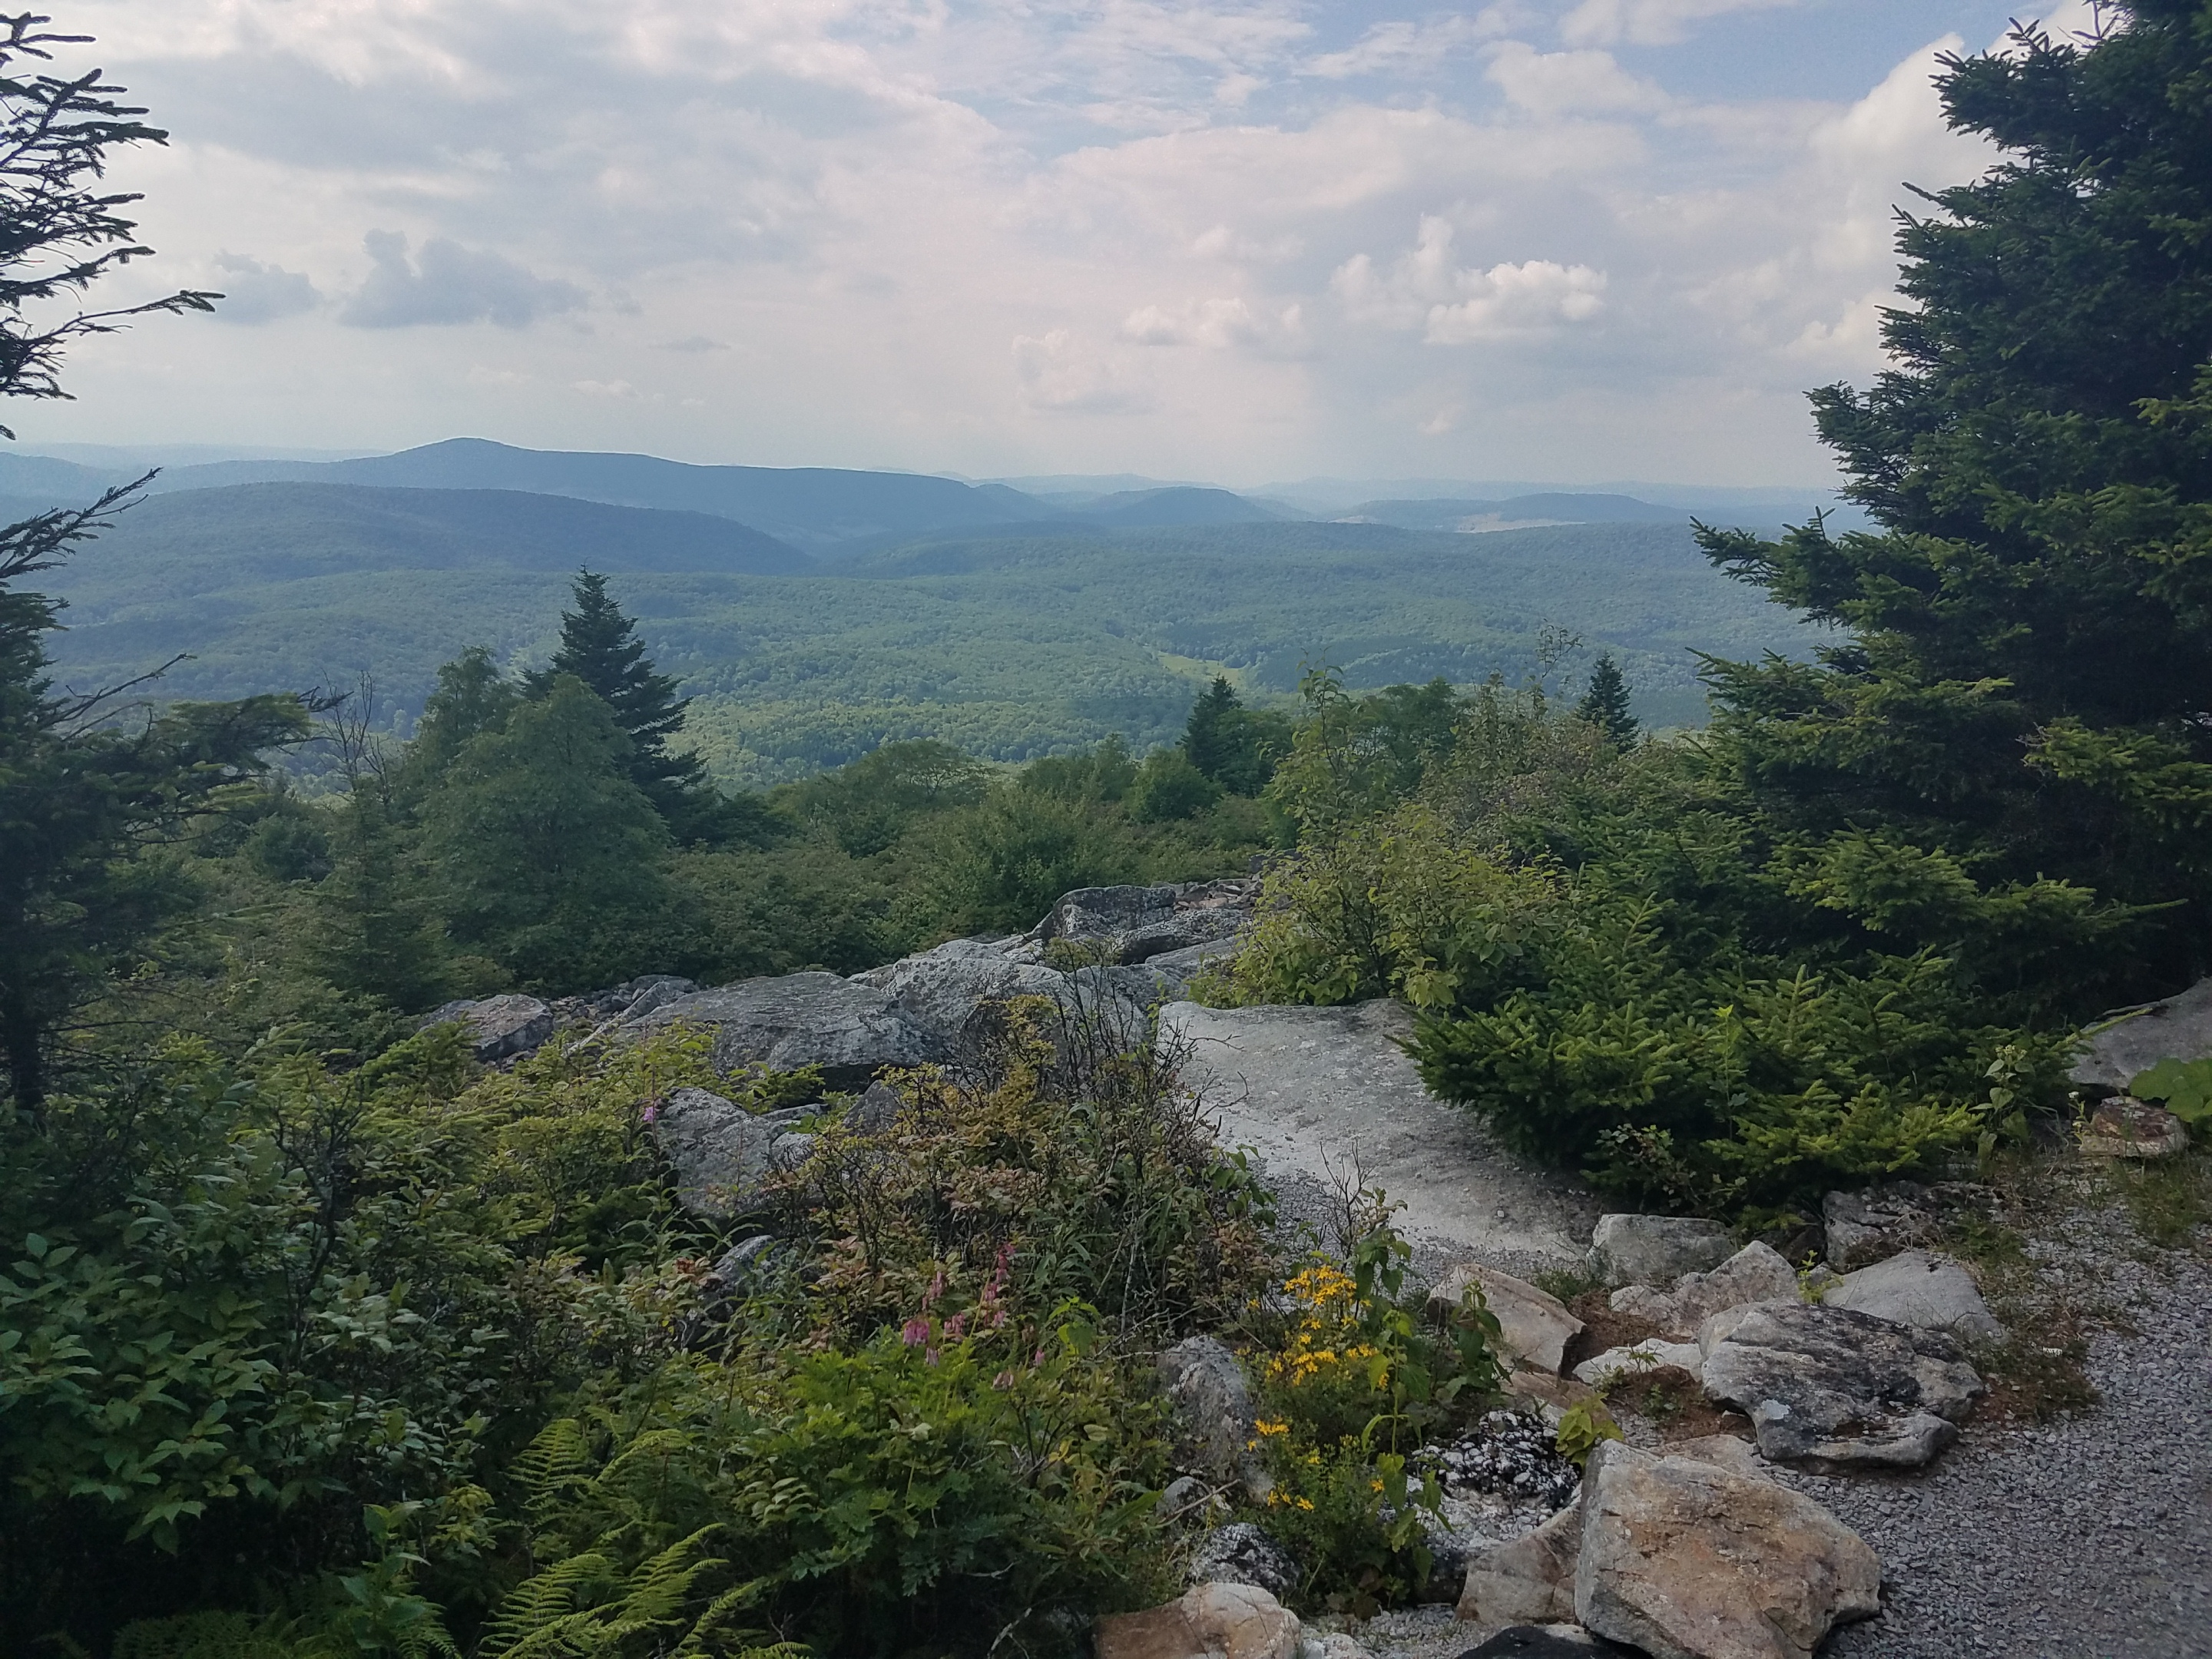 View from atop Spruce Knob, the tallest mountain in West Virginia